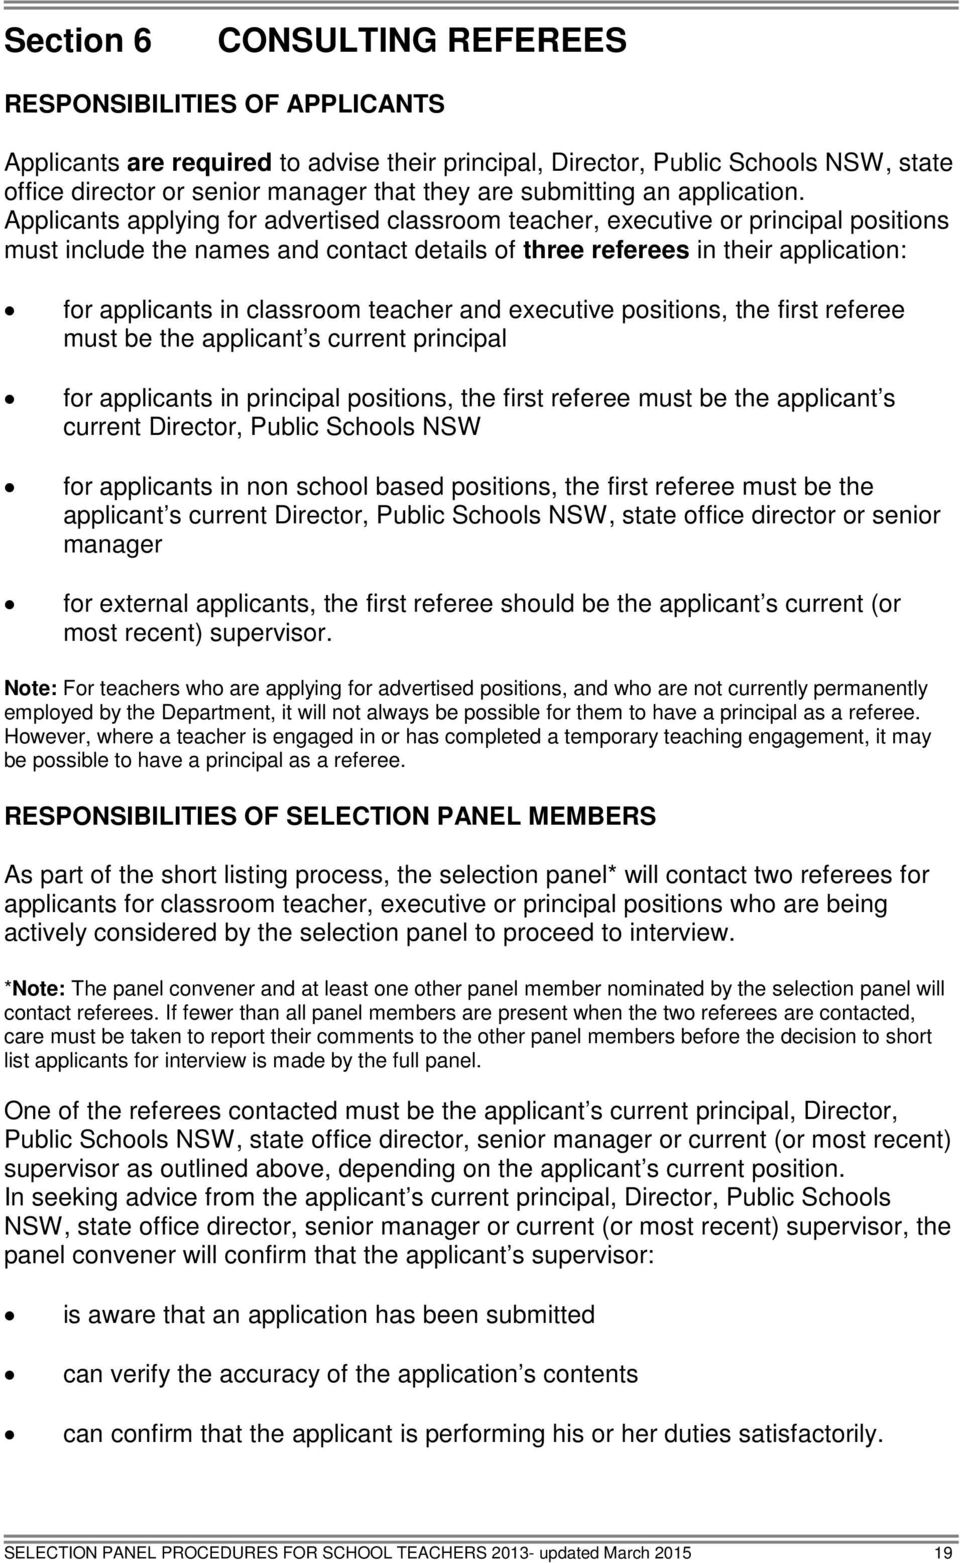 Applicants applying for advertised classroom teacher, executive or principal positions must include the names and contact details of three referees in their application: for applicants in classroom